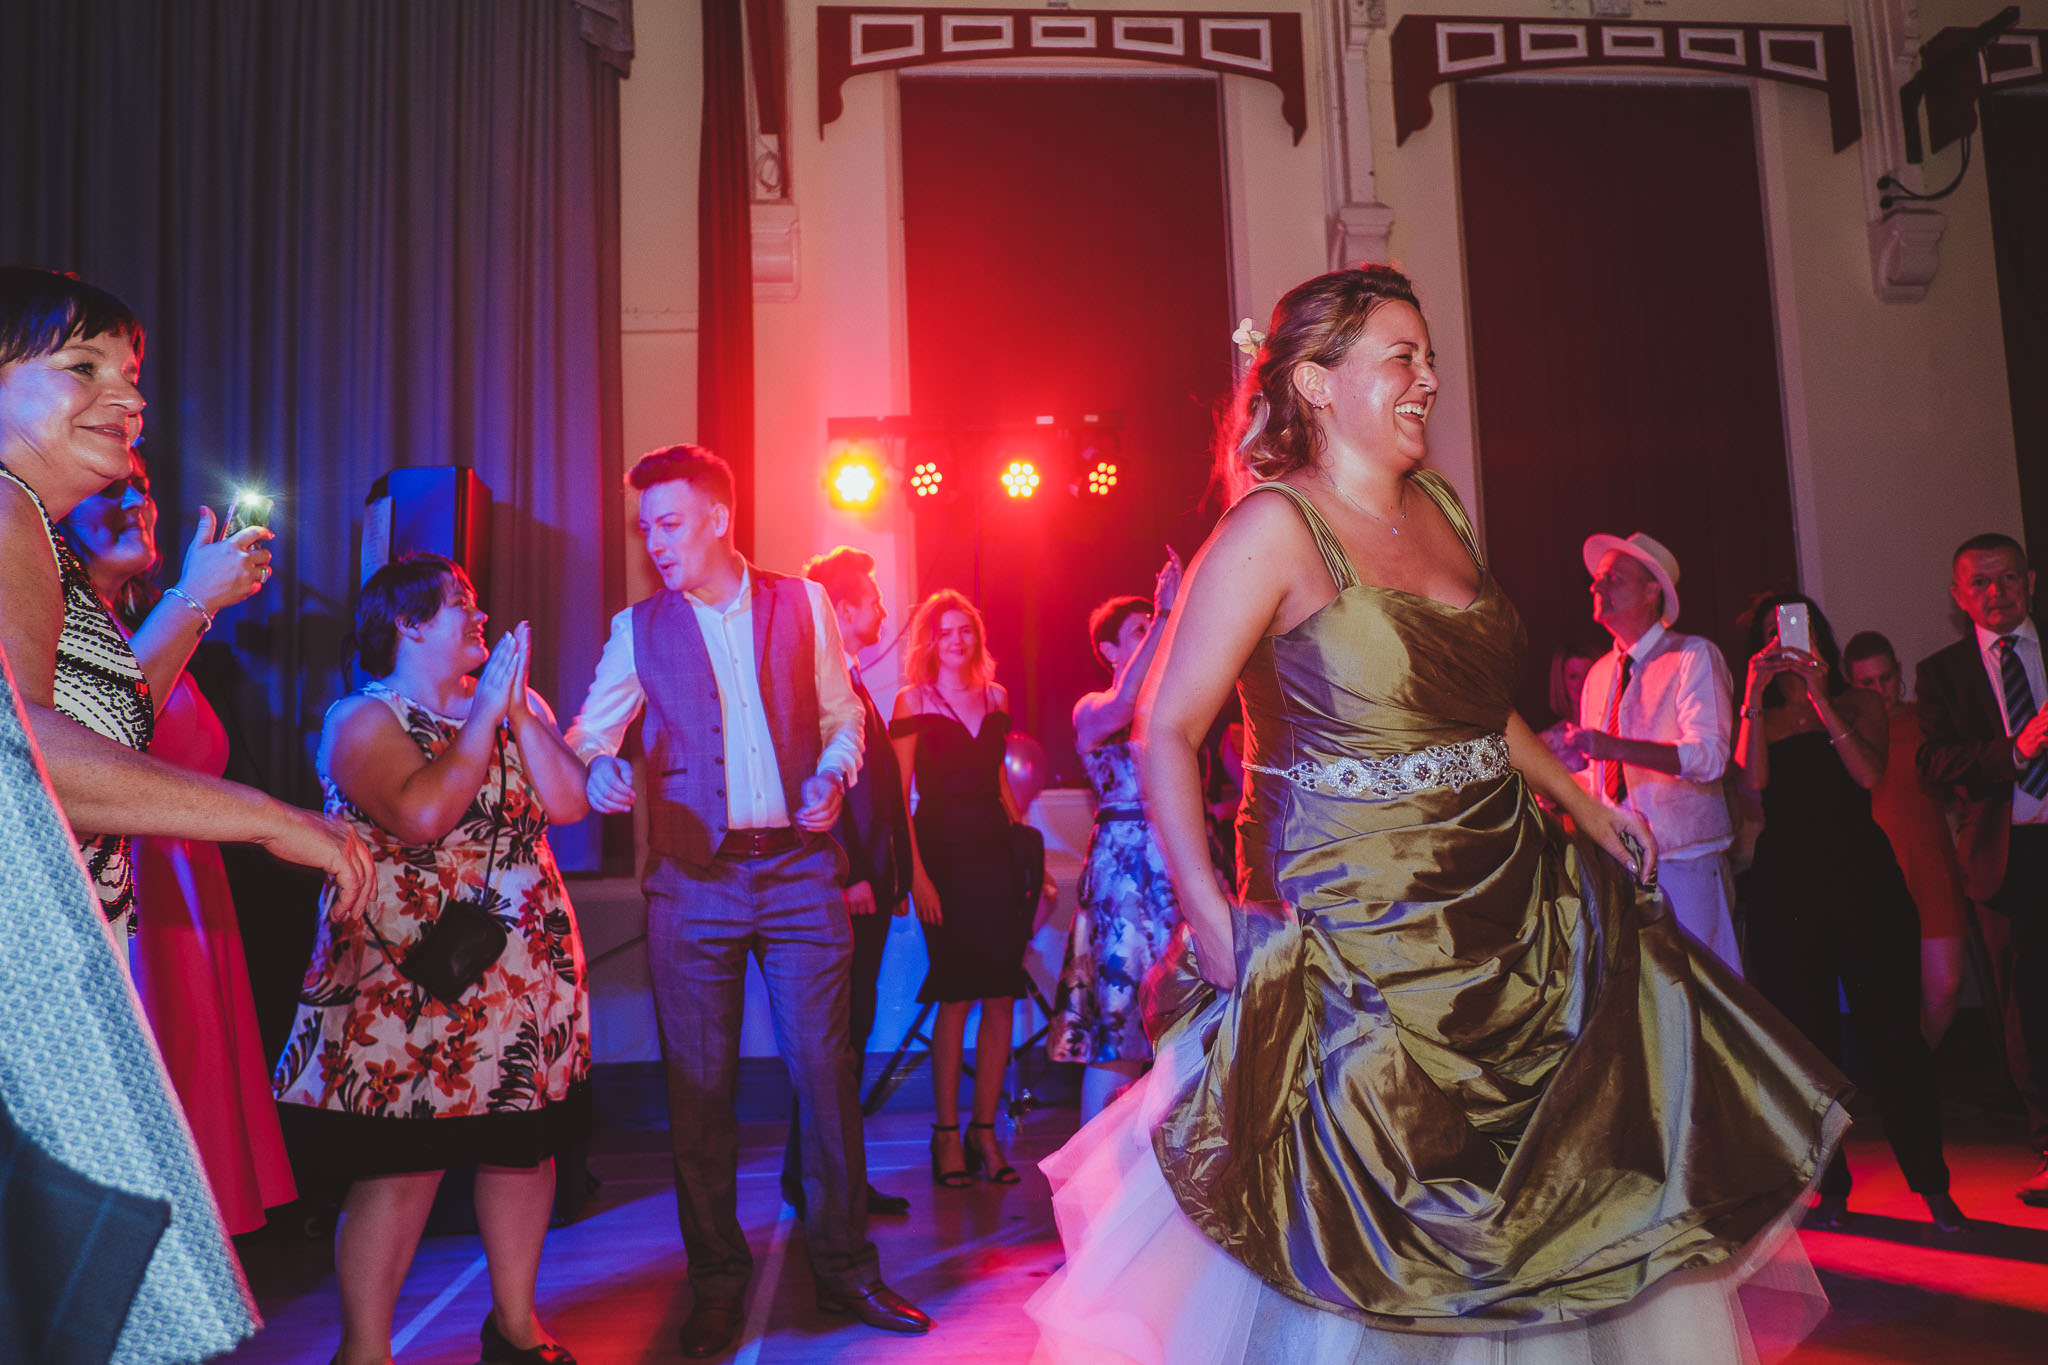 A colourful photo of the bride dancing